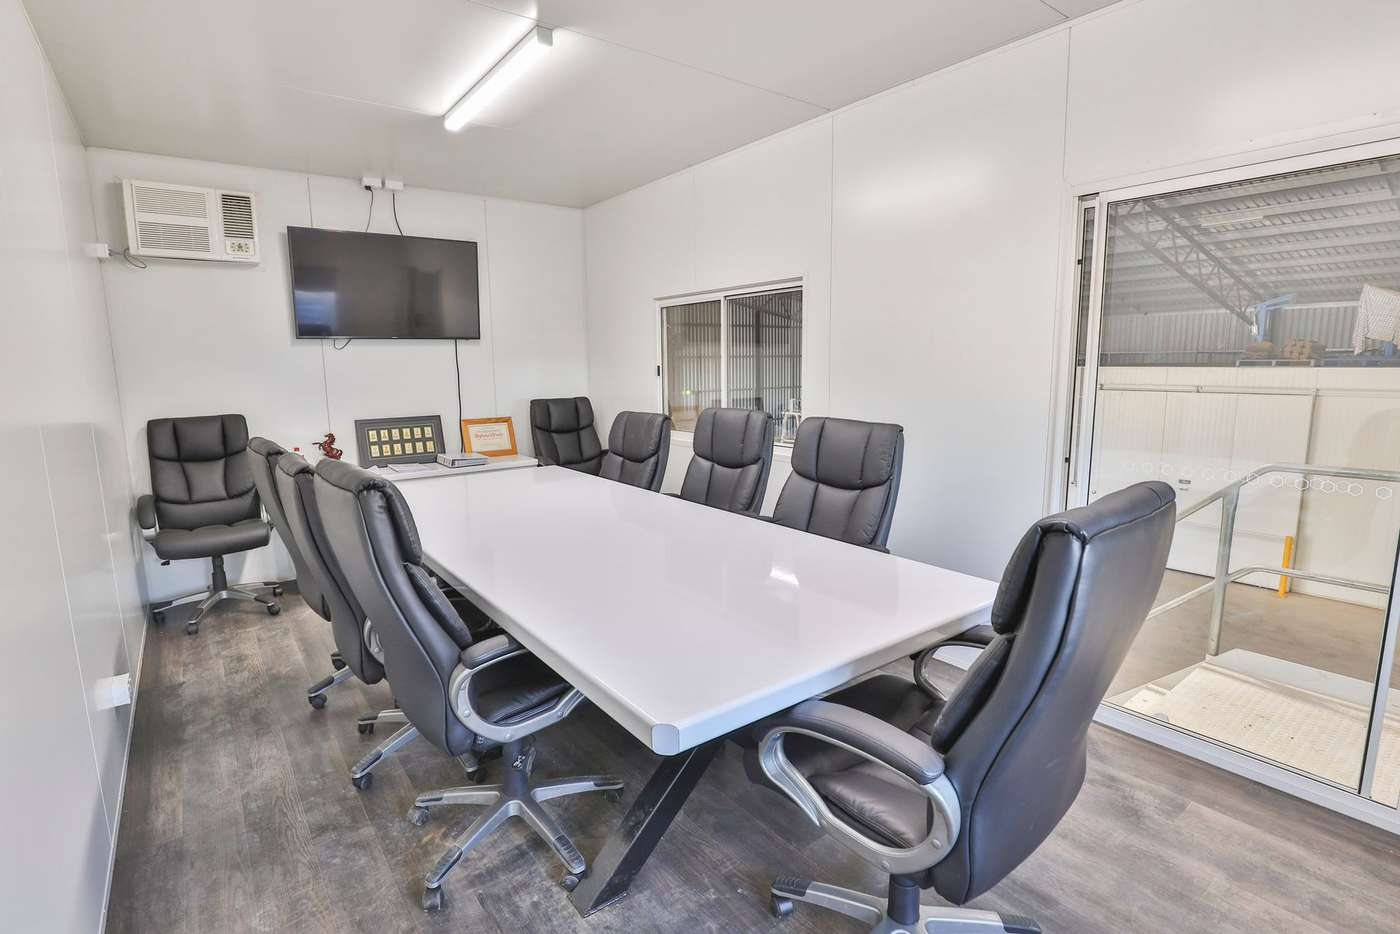 Seventh view of Homely horticulture listing, 118 Seventh Street Extension, Birdwoodton VIC 3505